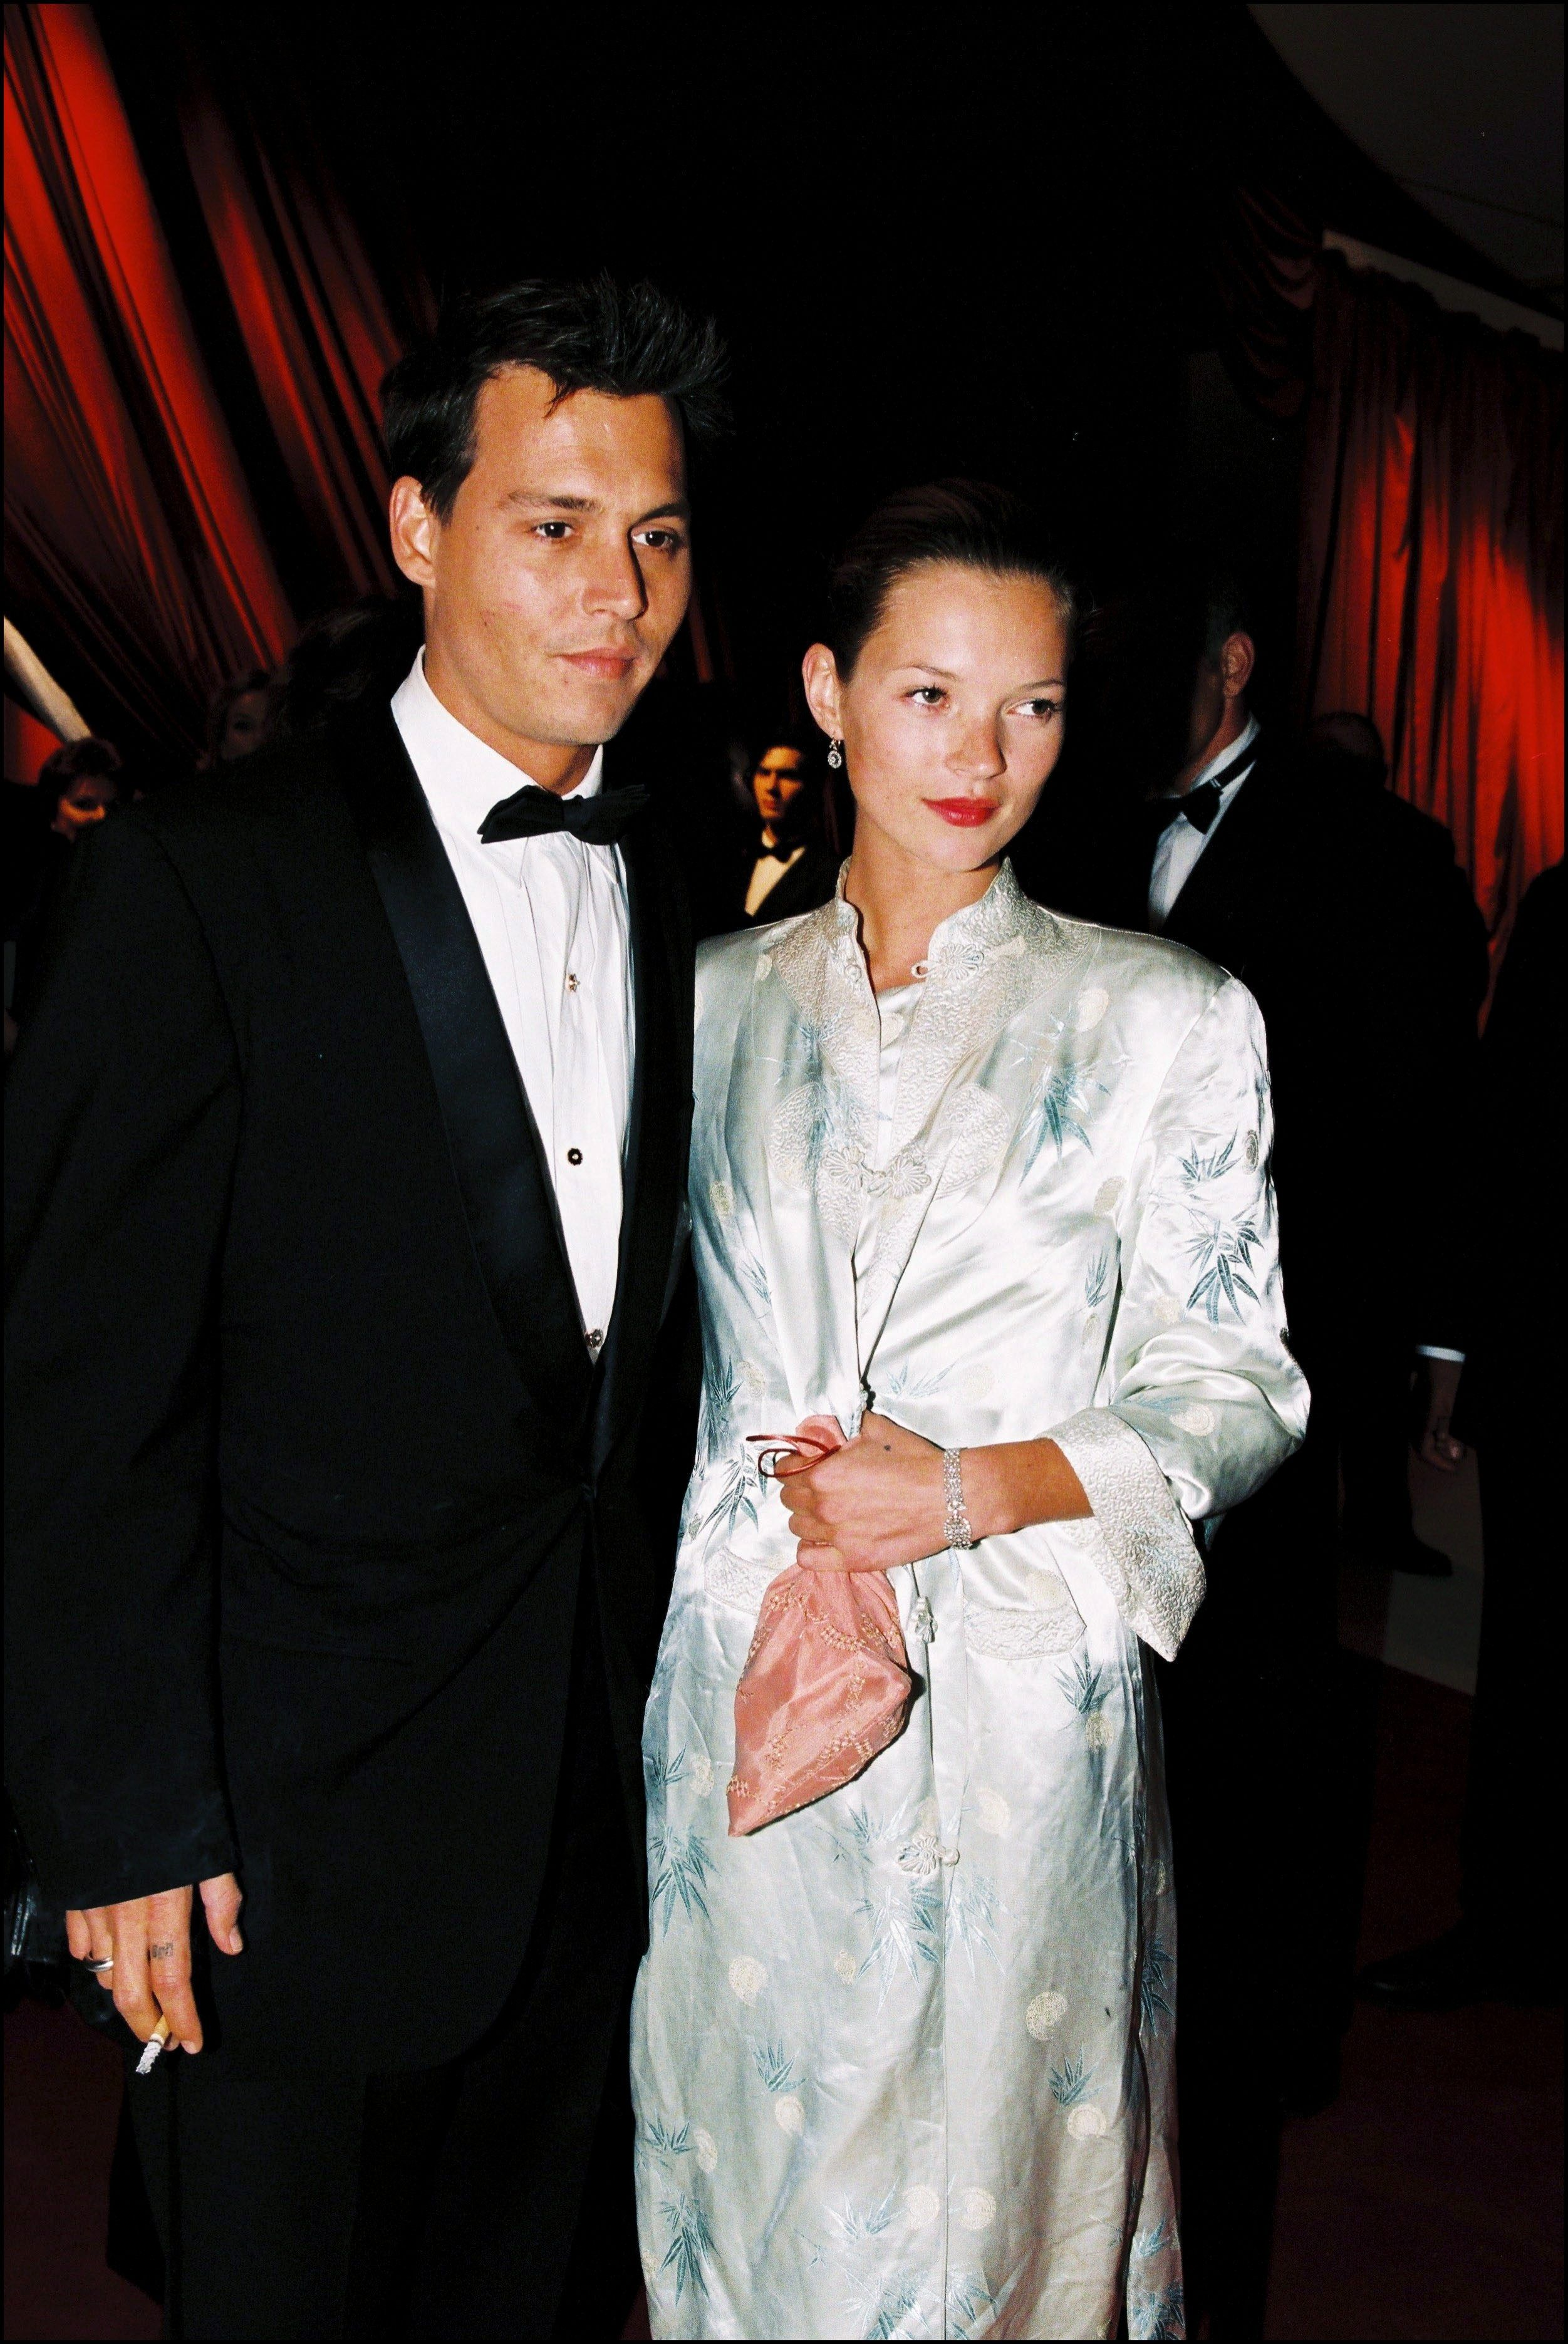 Festival Of Cannes 97: 50Th Anniversary Of Cannes Festival Party In Cannes, France On May 11, 1997.